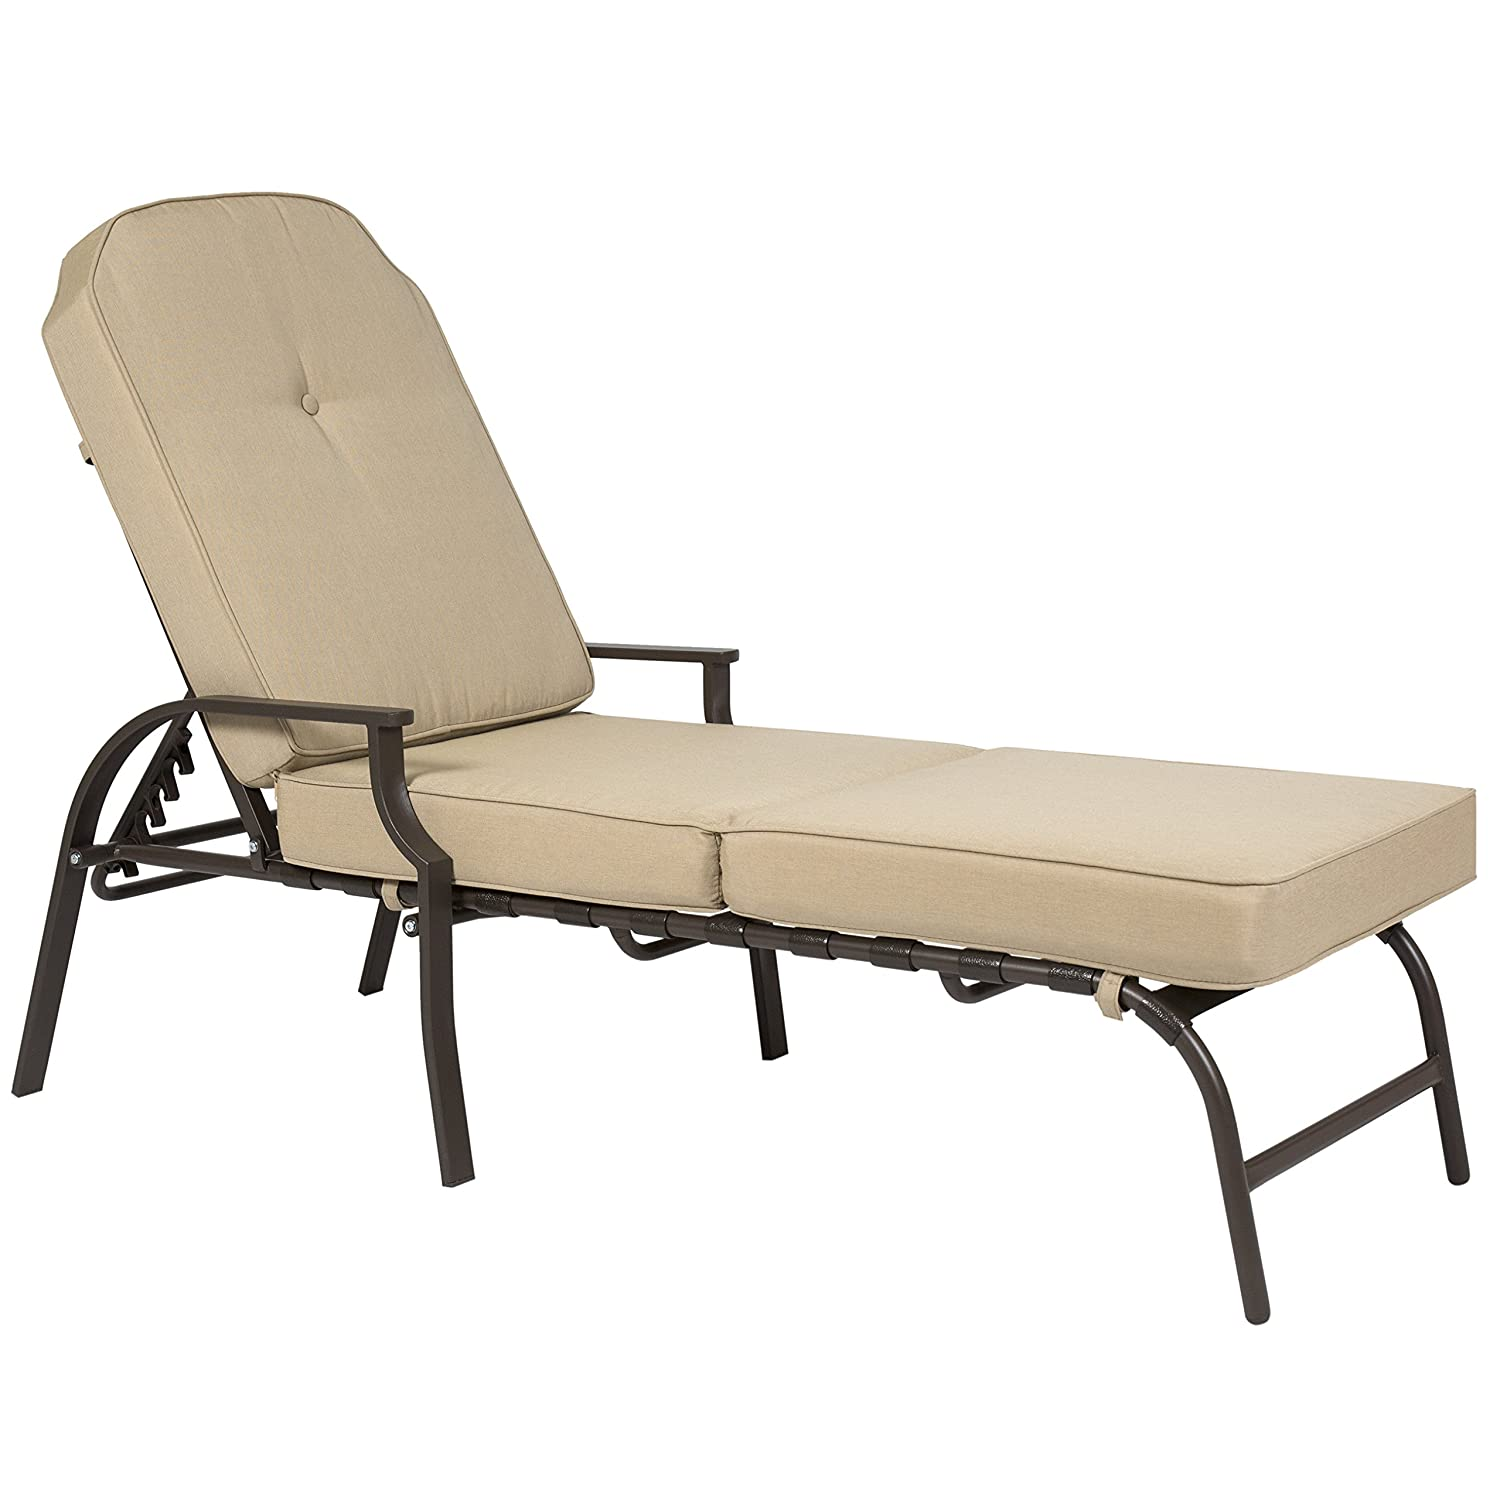 view store spring rc patio furniture revere rcwilley chair lounge willey outdoor chairs jsp springchair